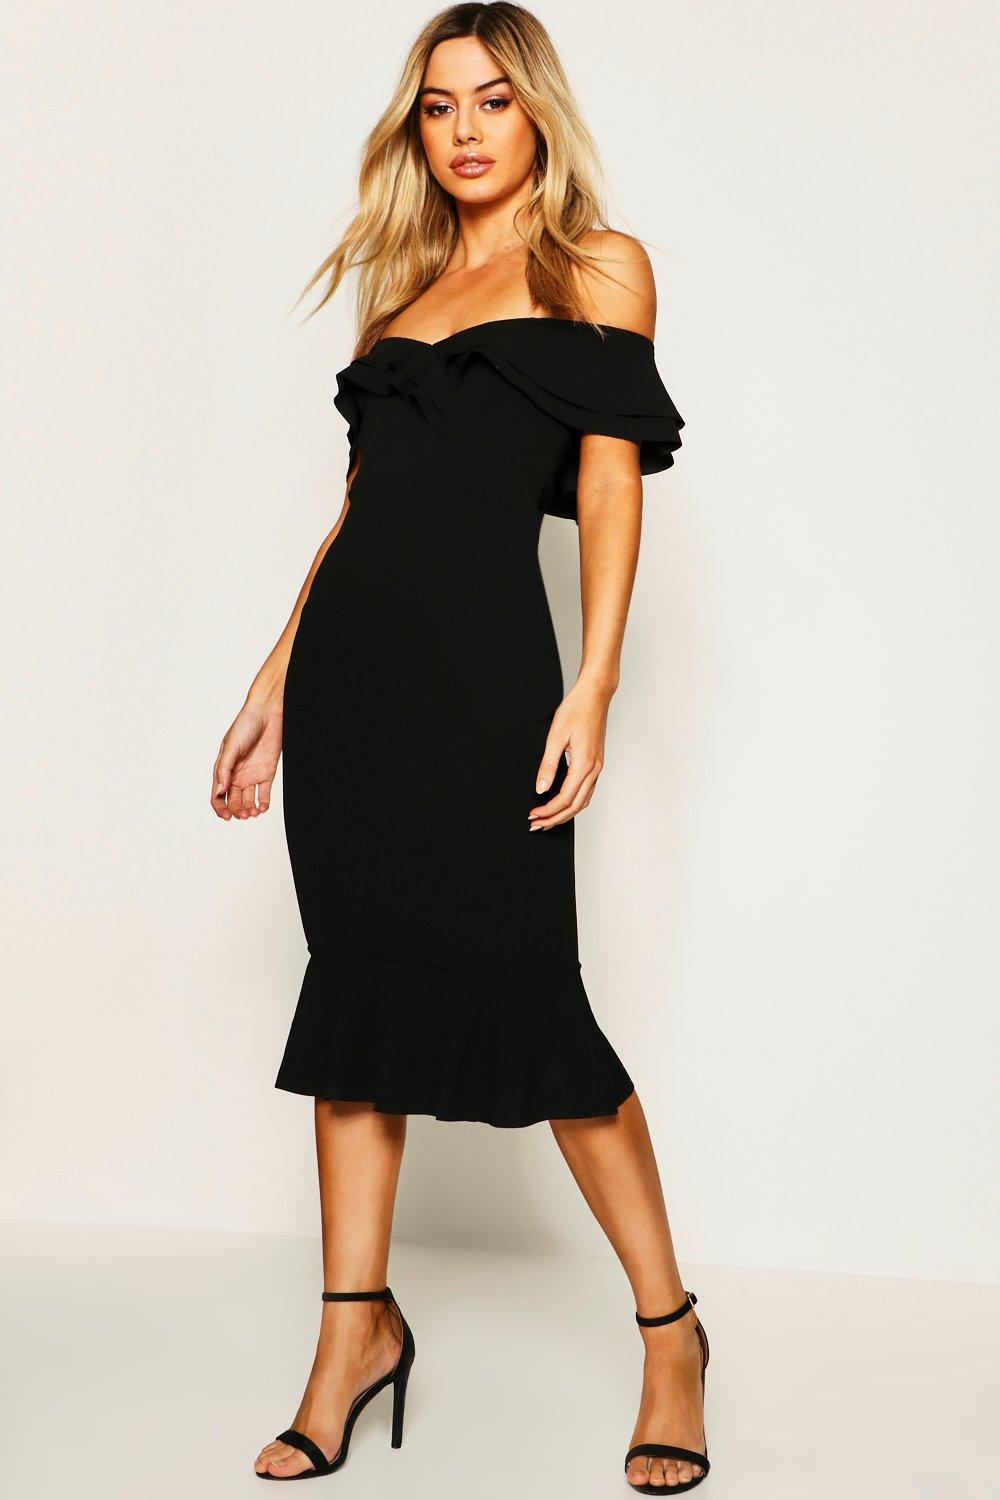 94d454e95d0f Boohoo Petite Bardot Midi Dress in Black - Lyst